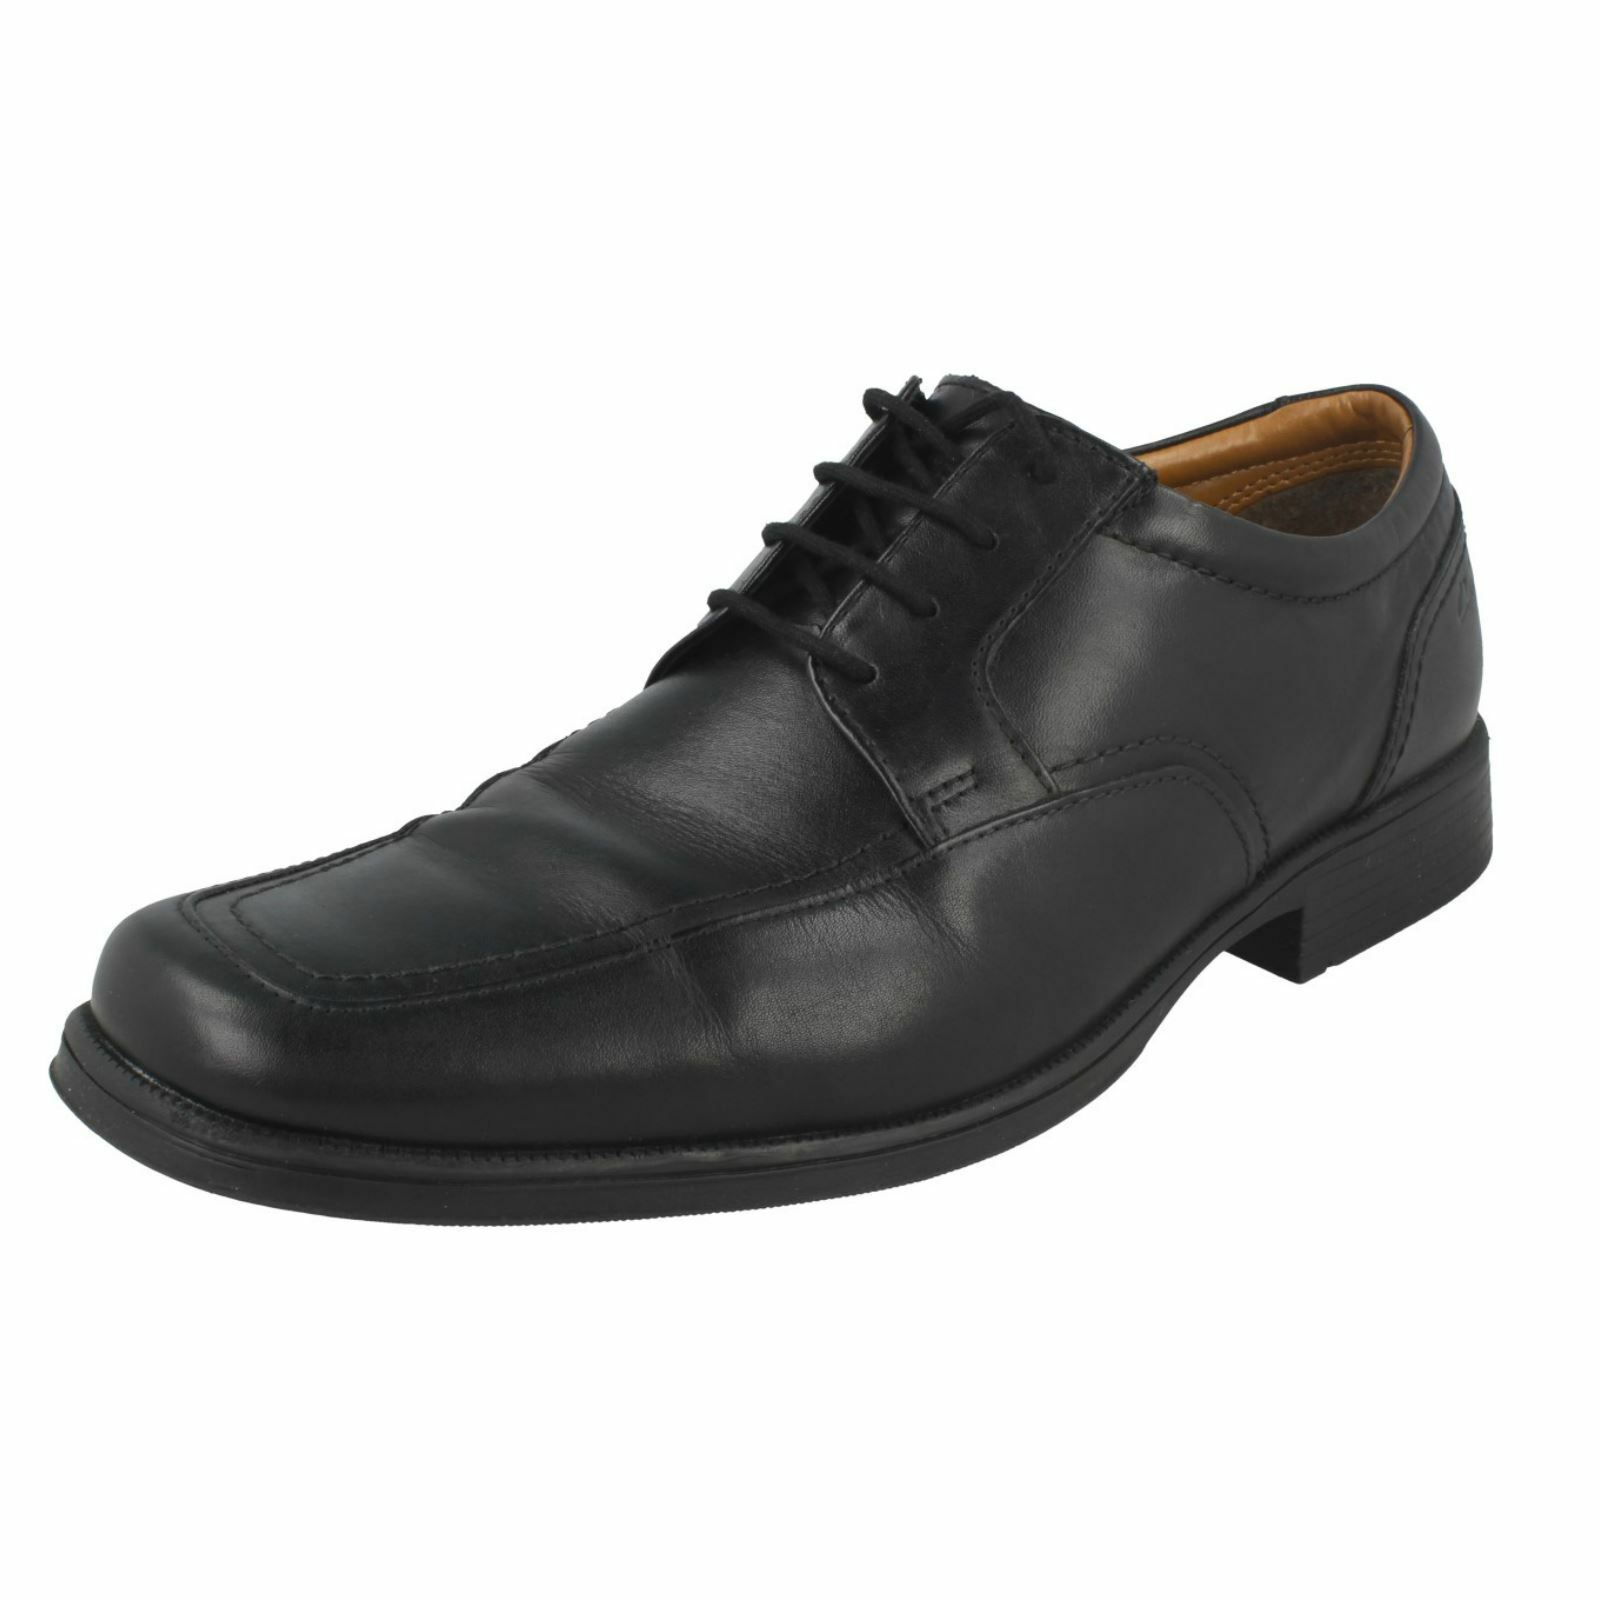 Mens Clarks Formal Lace Up Shoes 'Huckley Spring'